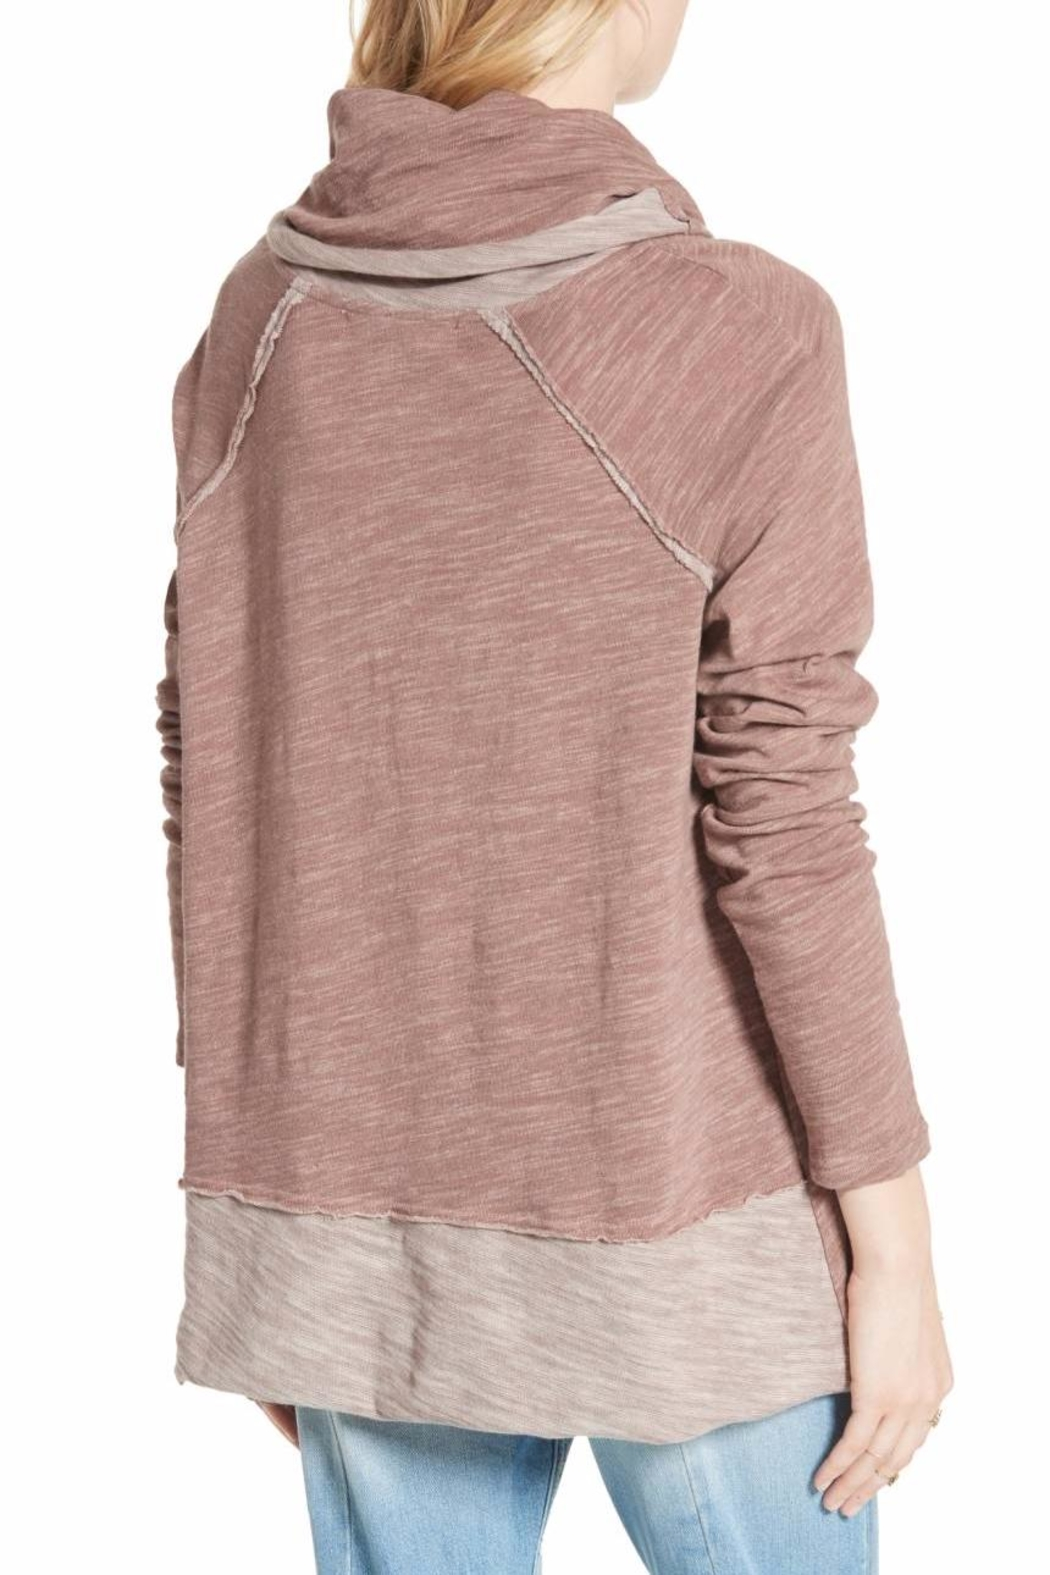 Free People Cocoon Cowl Pullover - Front Full Image